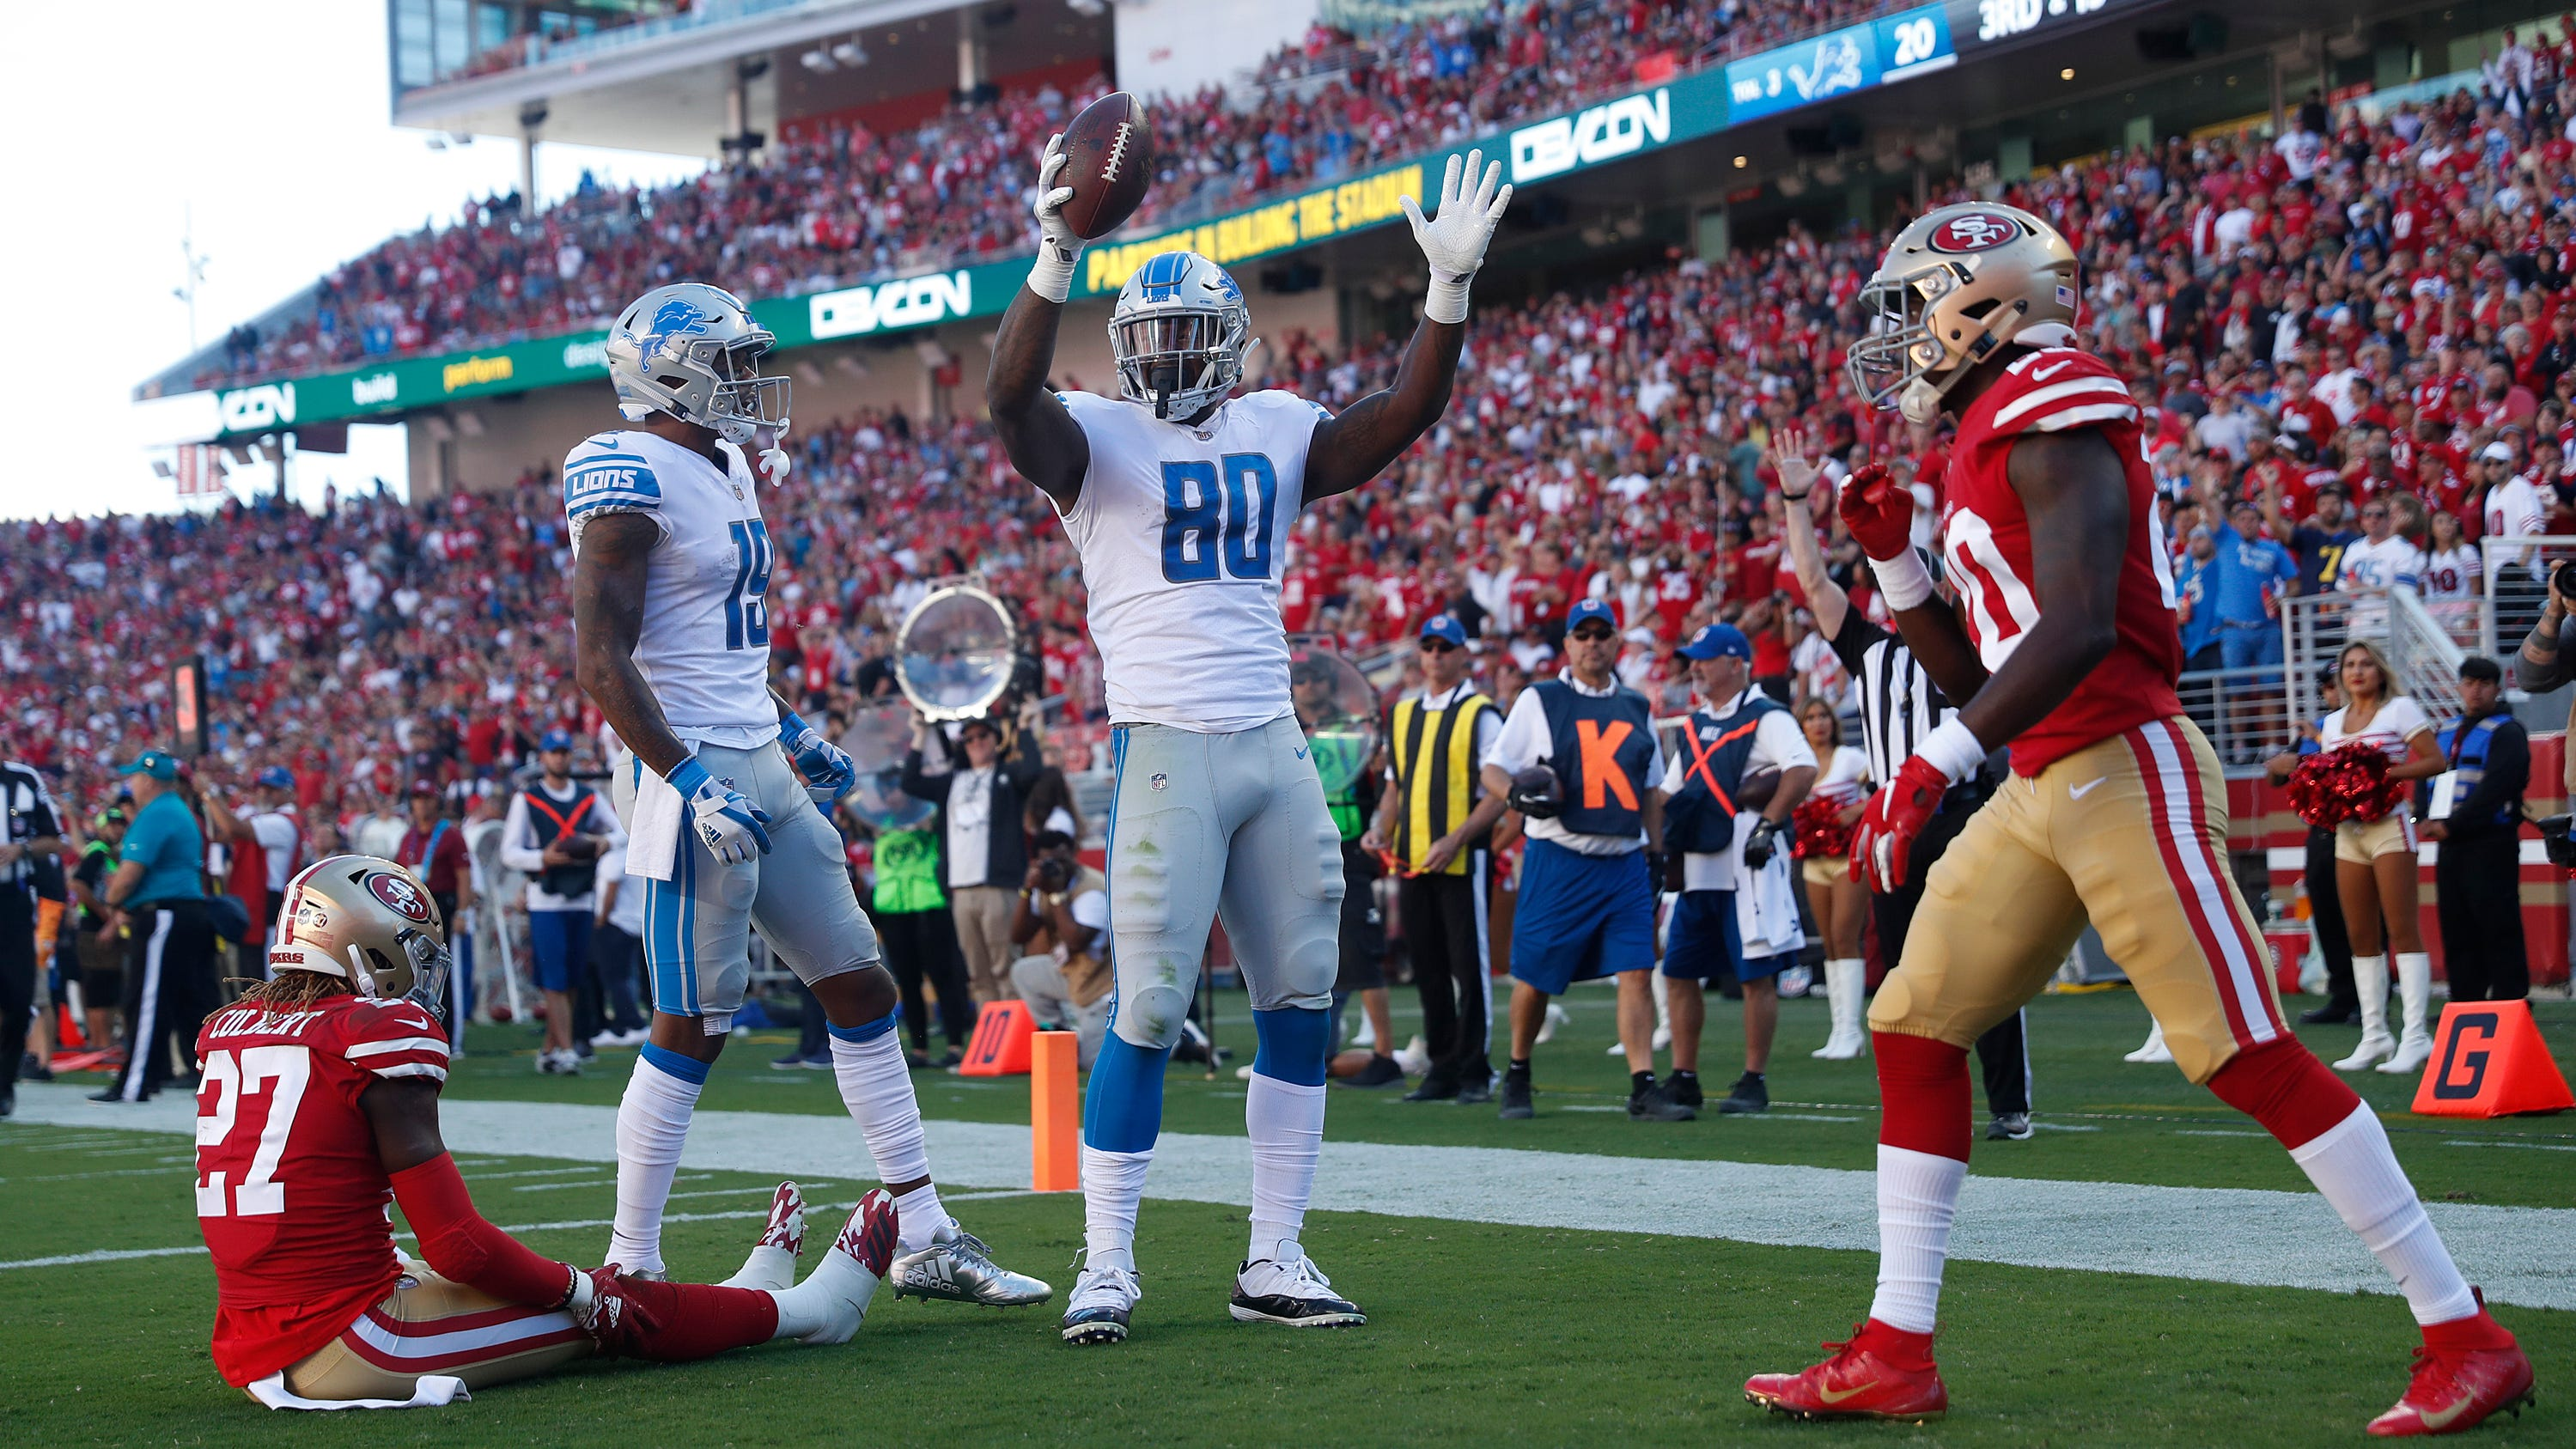 Lions tight end Roberts relishes end of scoreless streak